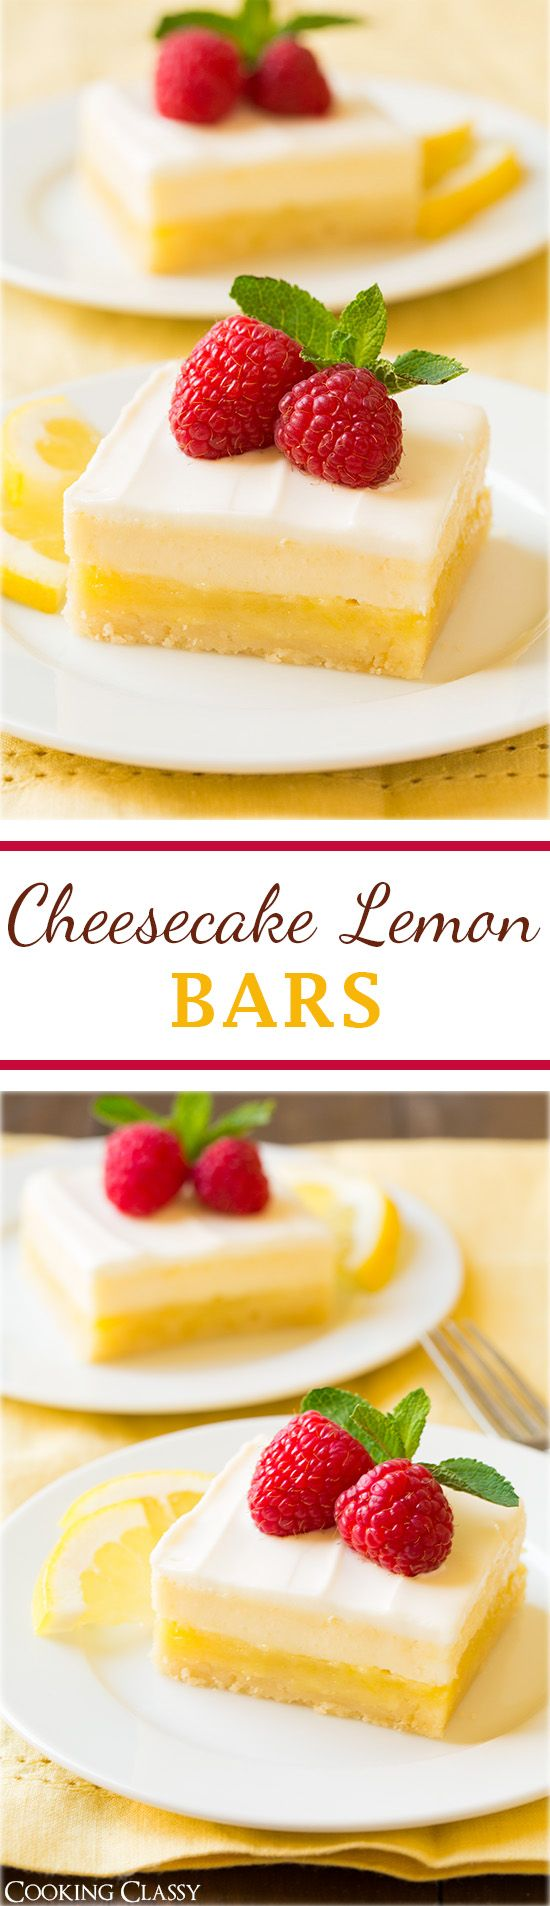 Cheesecake Lemon Bars - these are the ULTIMATE spring dessert!